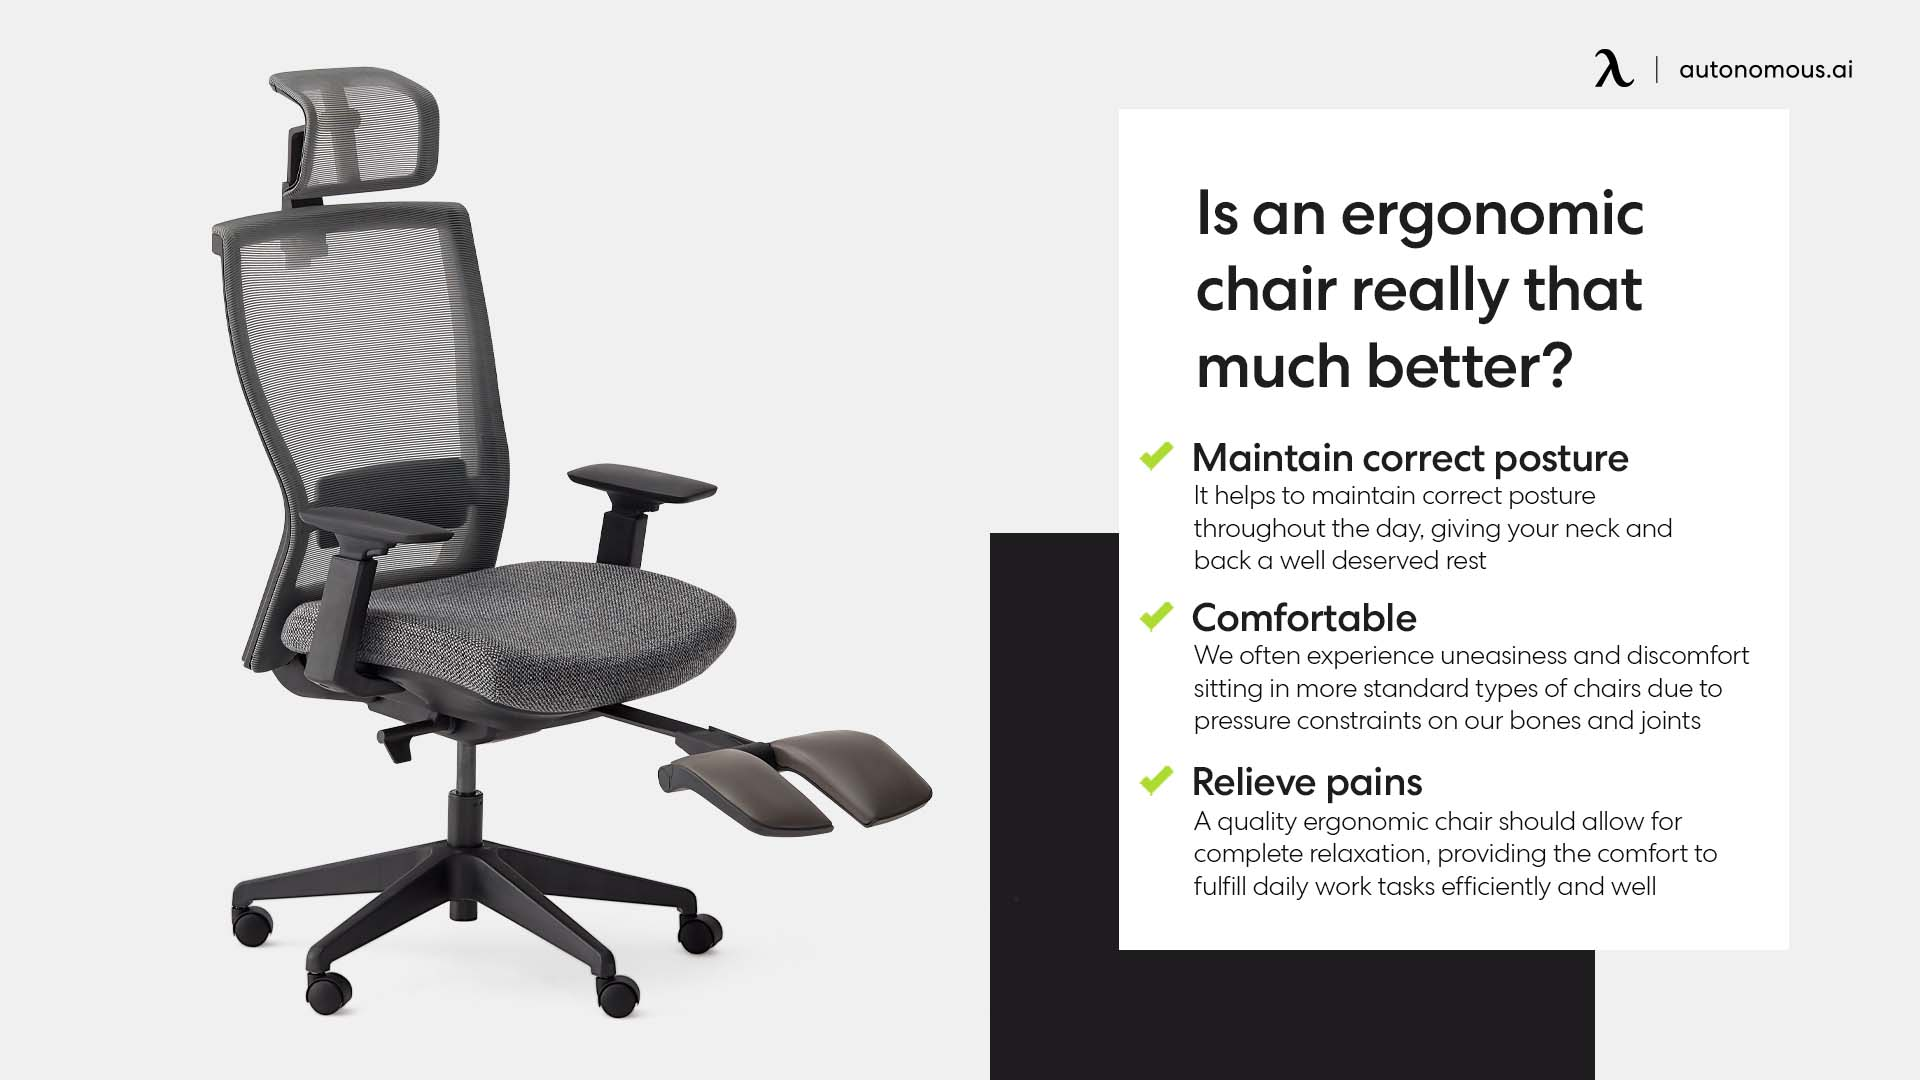 Photo of an ergonomic chair features that much better